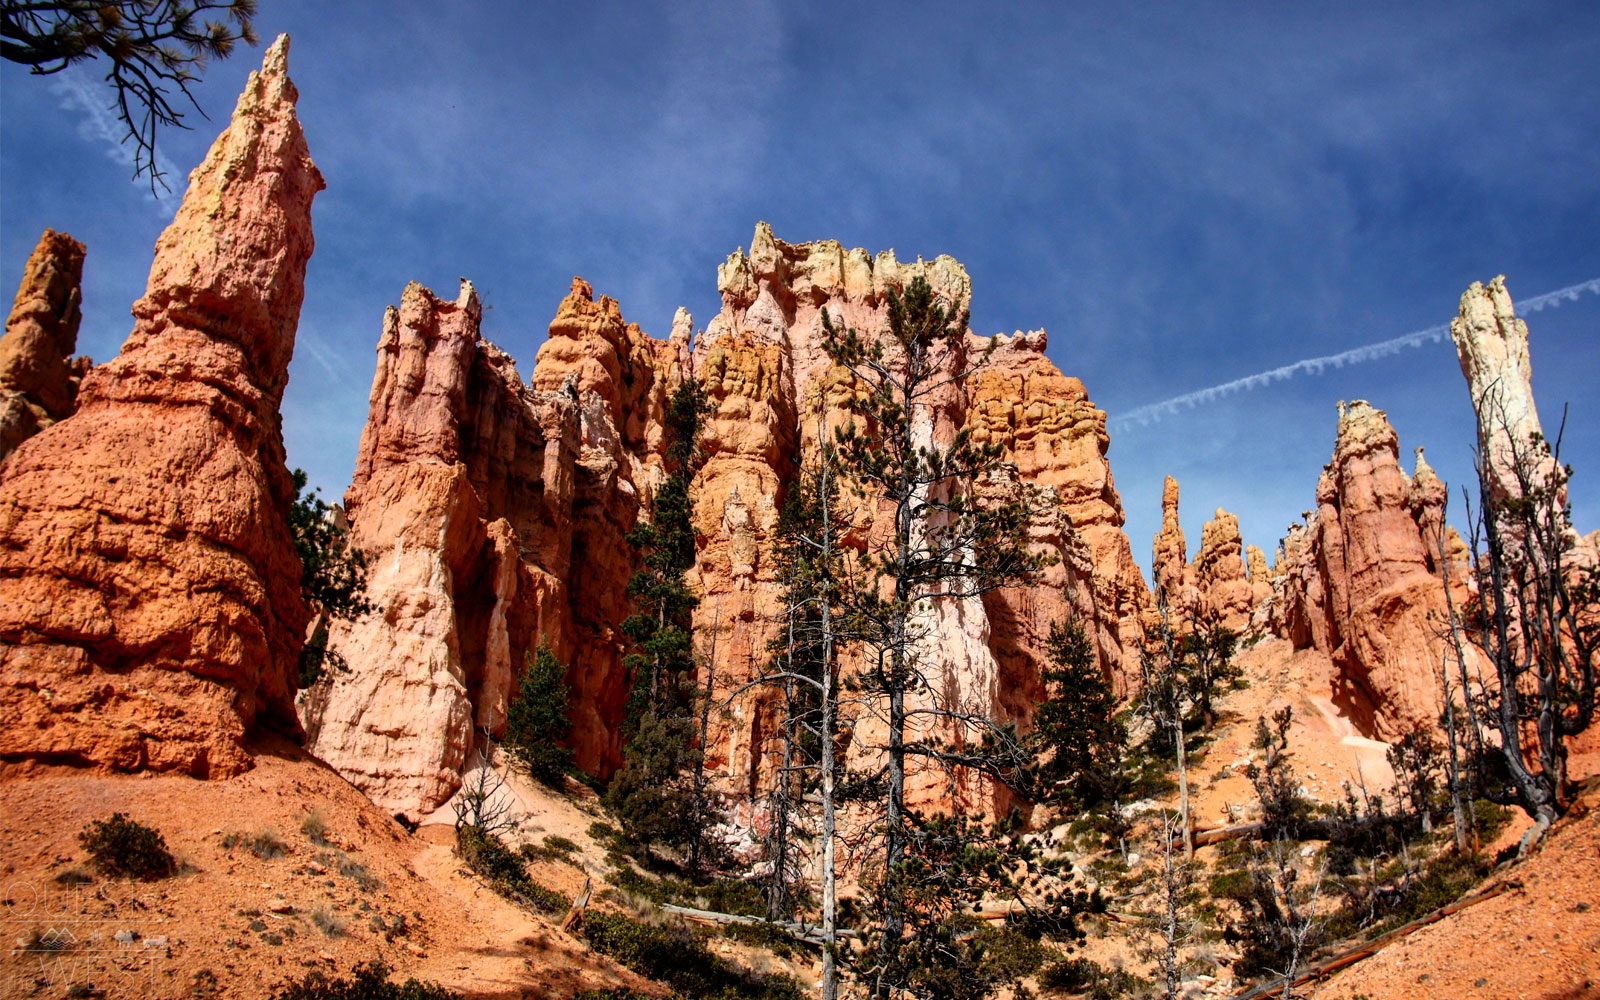 "One of Paquette's top spots in Bryce Canyon National Park is the Queen's Garden Trail, where you'll spot a variety of the area's famed hoodoos (tall and slender rock spires that jut out from the bottom of arid basins). One of the hoodoos at the end of the trail even looks like Queen Victoria, making it appear as though she is overlooking the garden.                               ""When you walk through, it feels like you're in a giant castle as you see all these rock formations around you,"" Paquette said of the site.                               The trail is a simple one, according to park representatives, making it an easy way to start exploring the park."